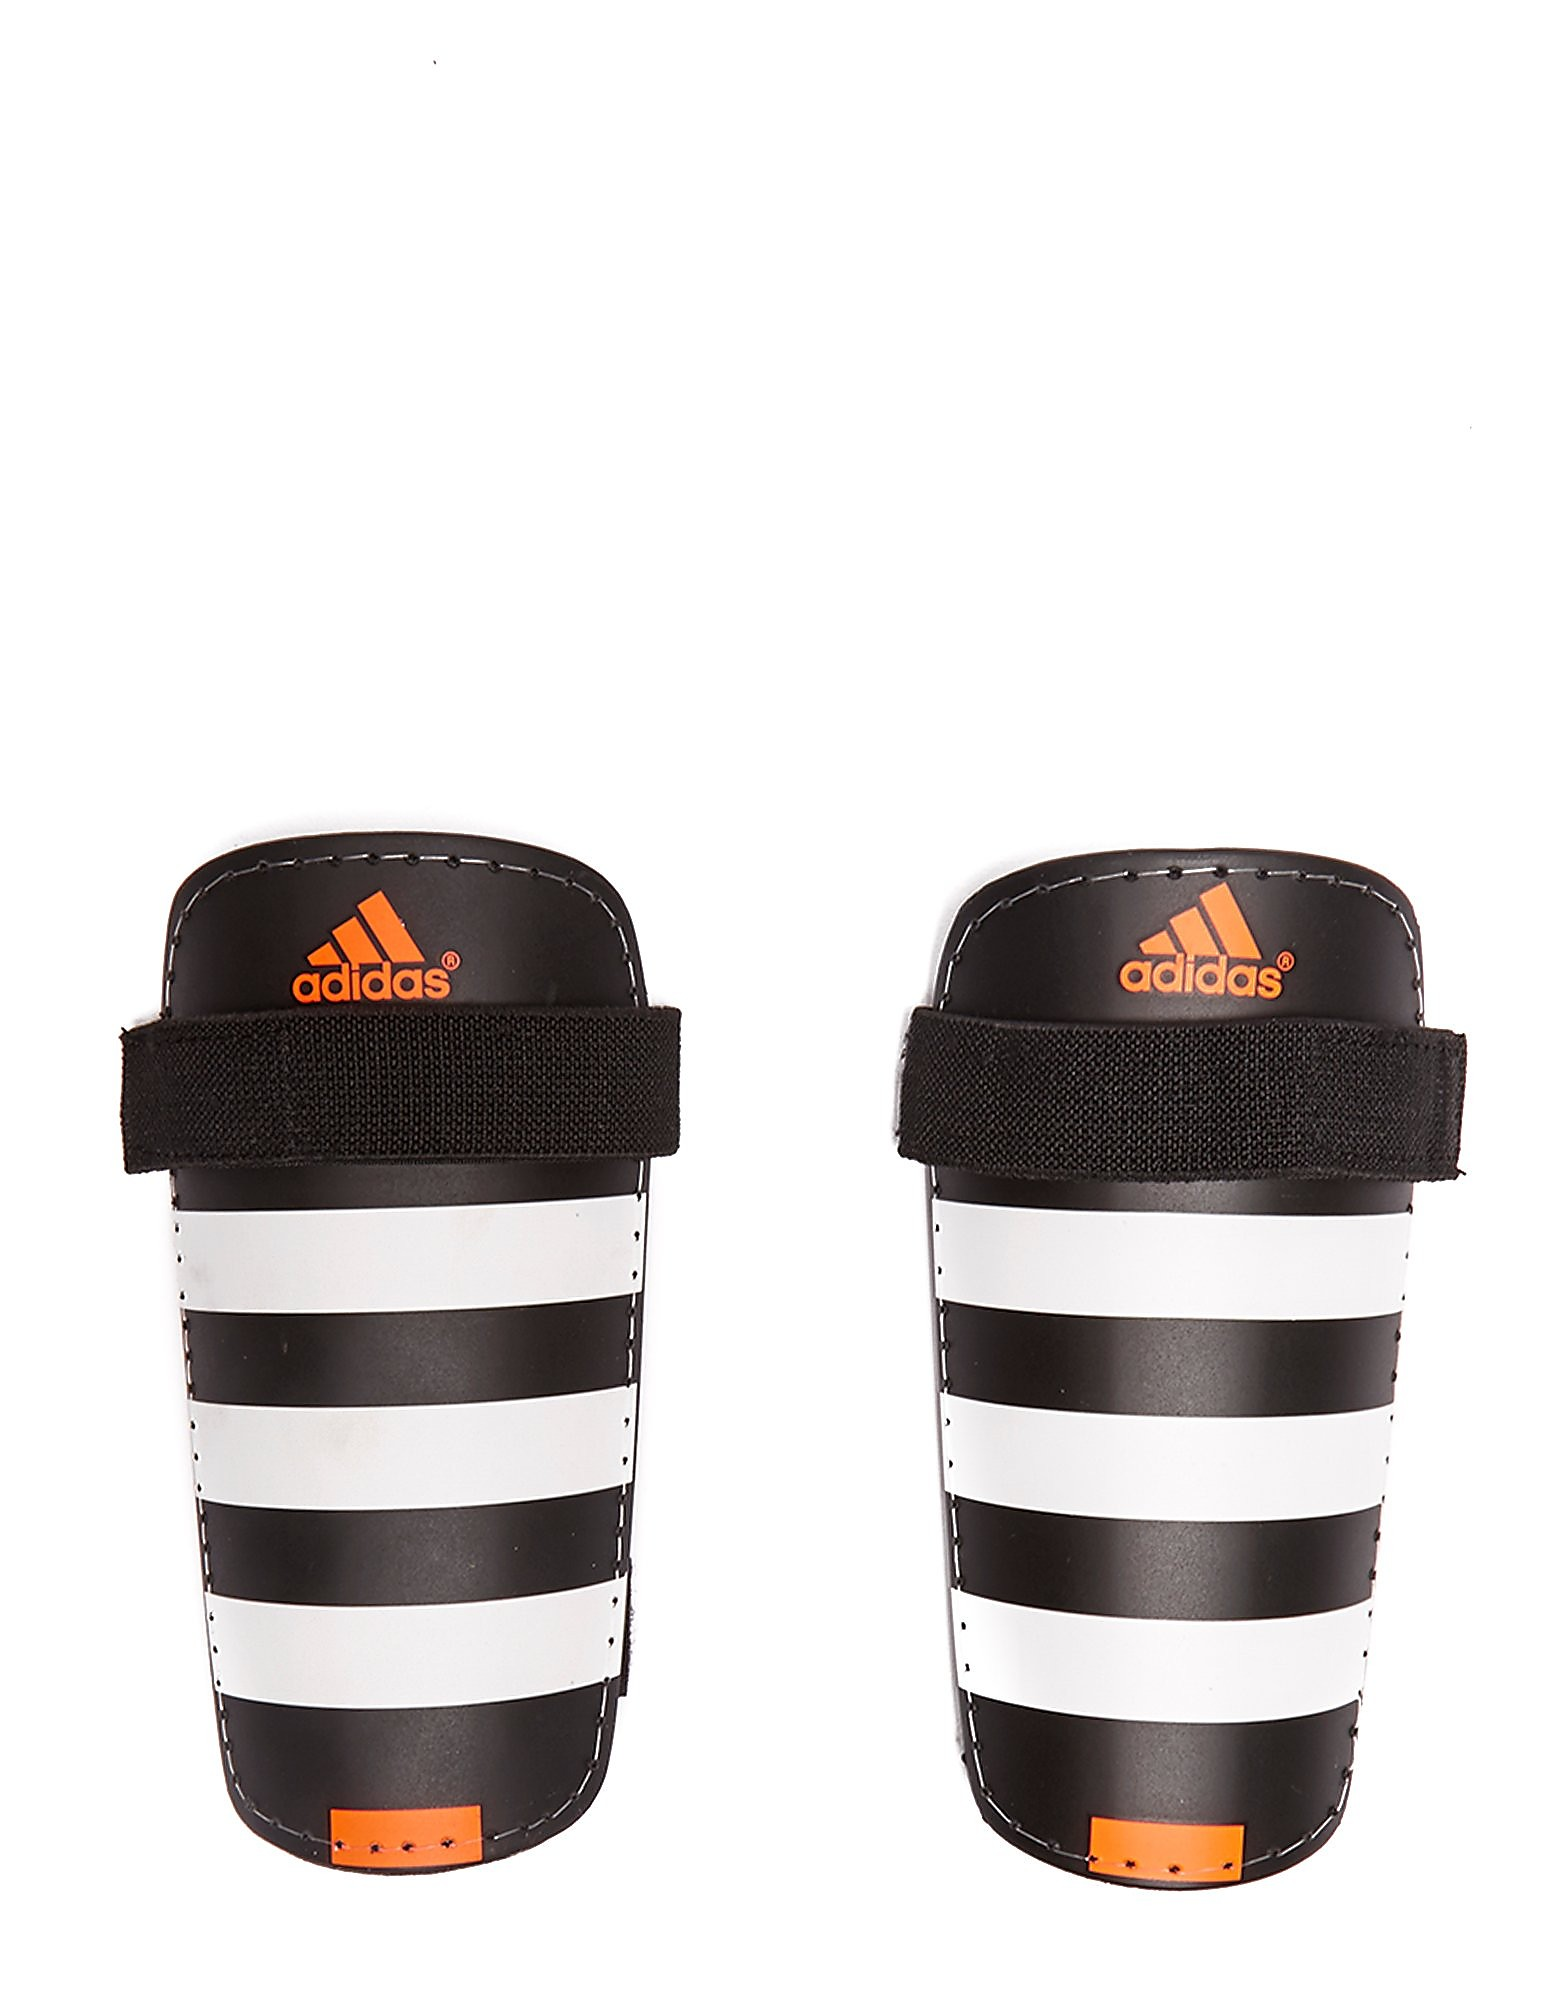 adidas Everlite Shin Guards